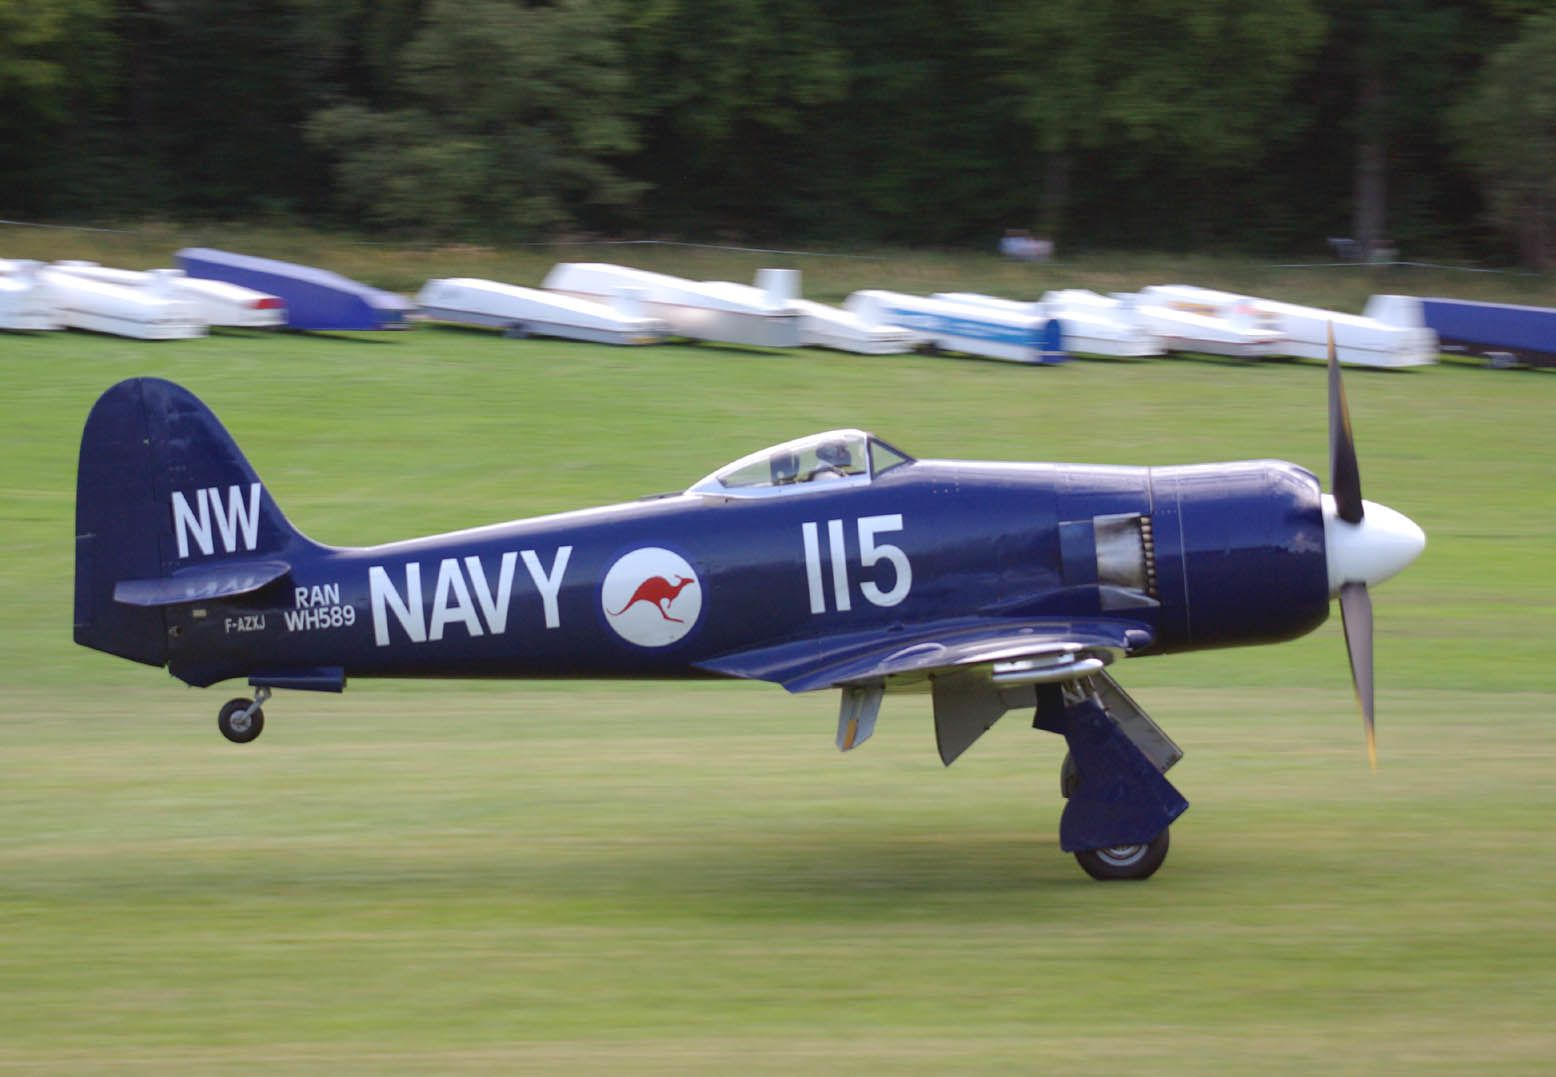 Le Hawker Sea Fury F-AZXJ